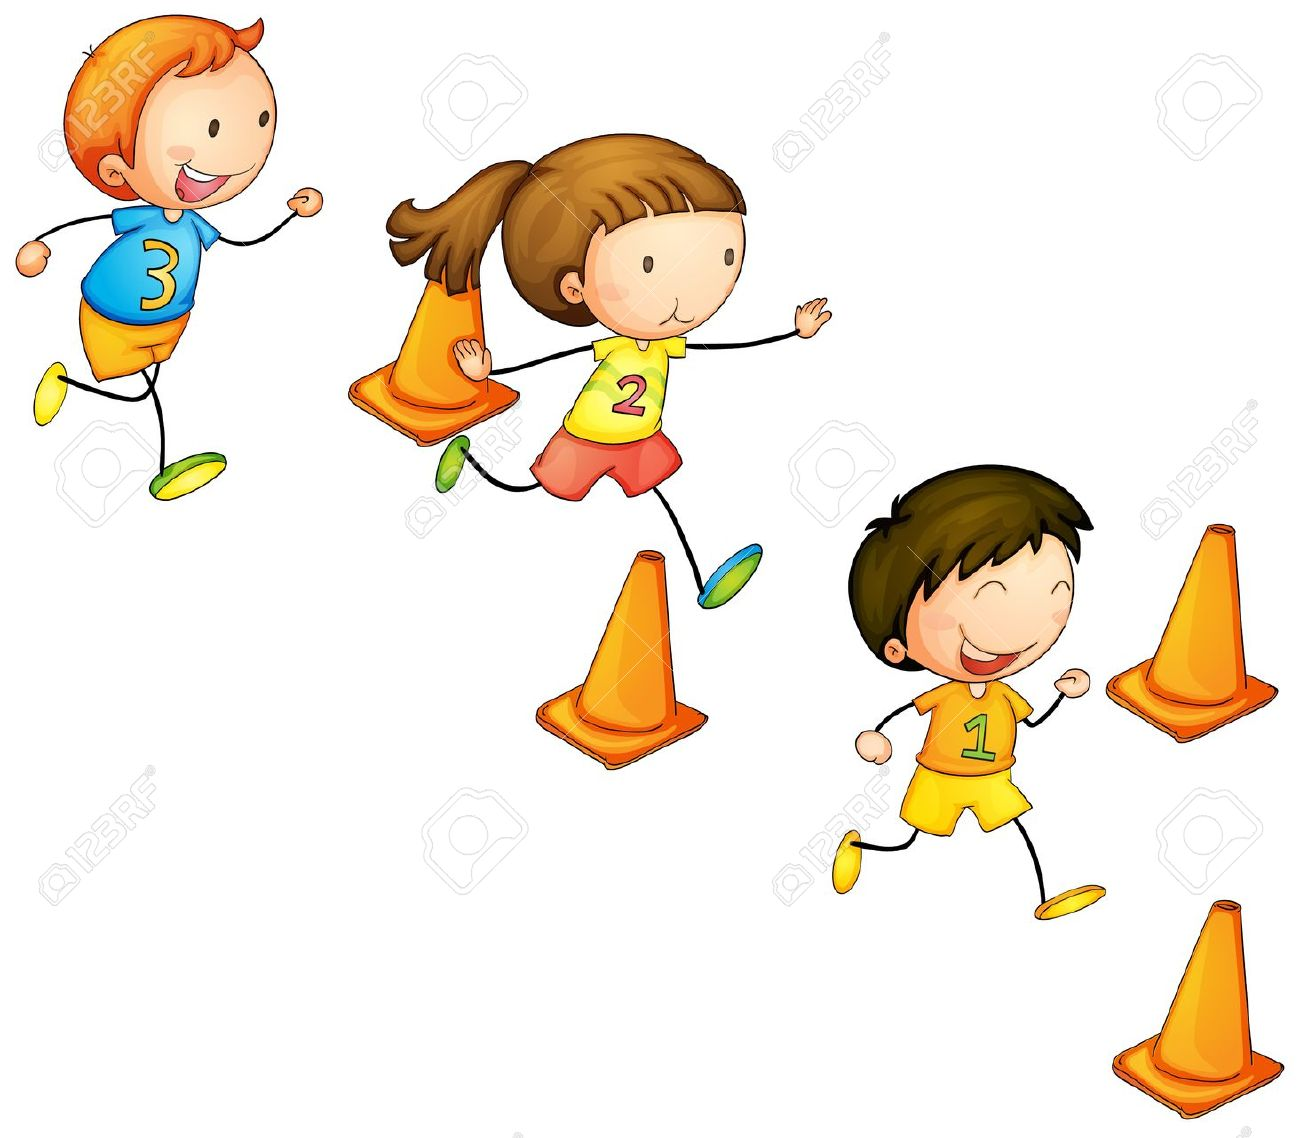 Running free download best. Race clipart 3 kid